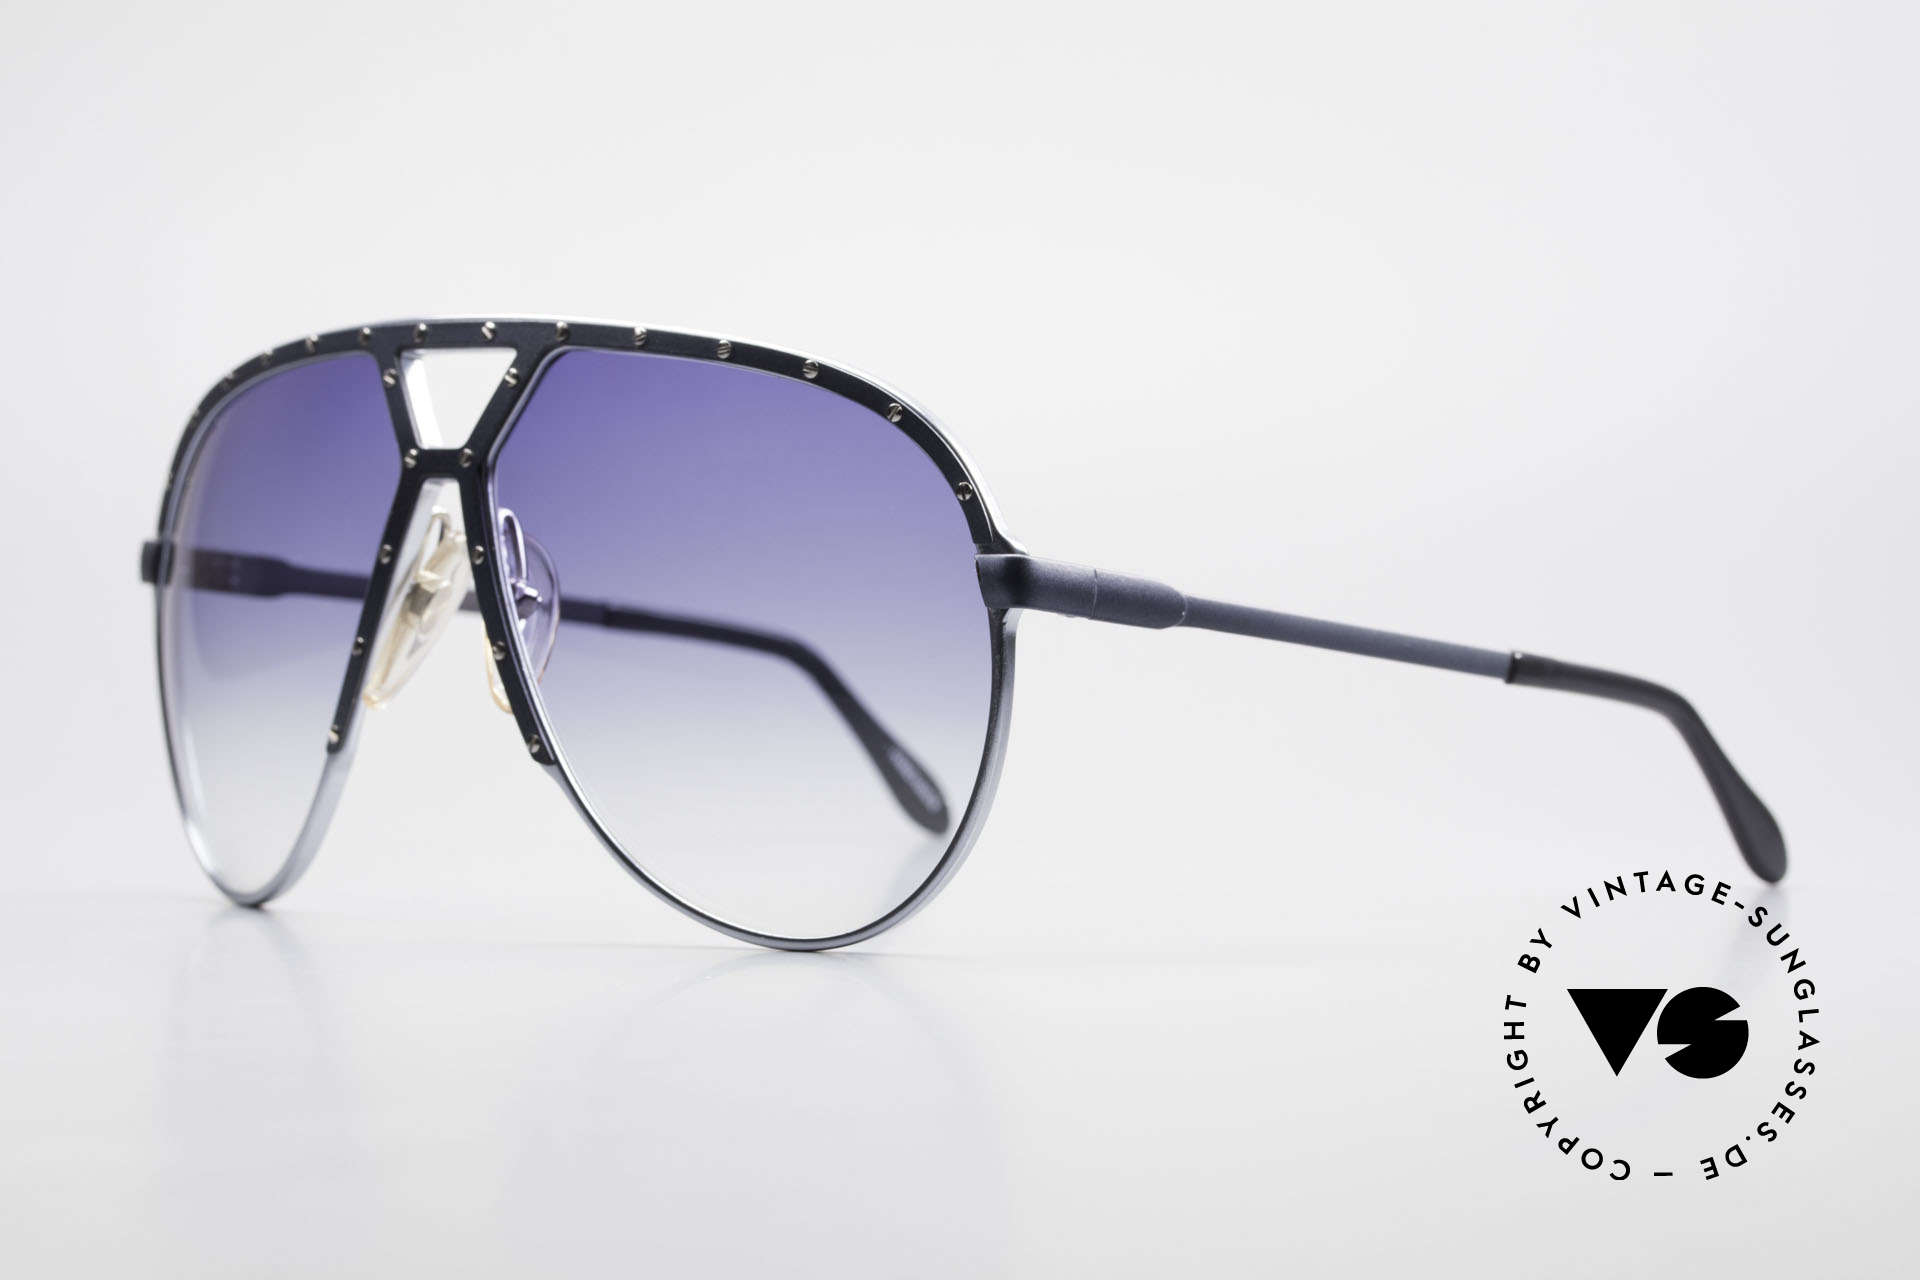 Alpina M1 Extra Large M1 80's Sunglasses, 1.generation = a bit higher than the M1's after 1985, Made for Men